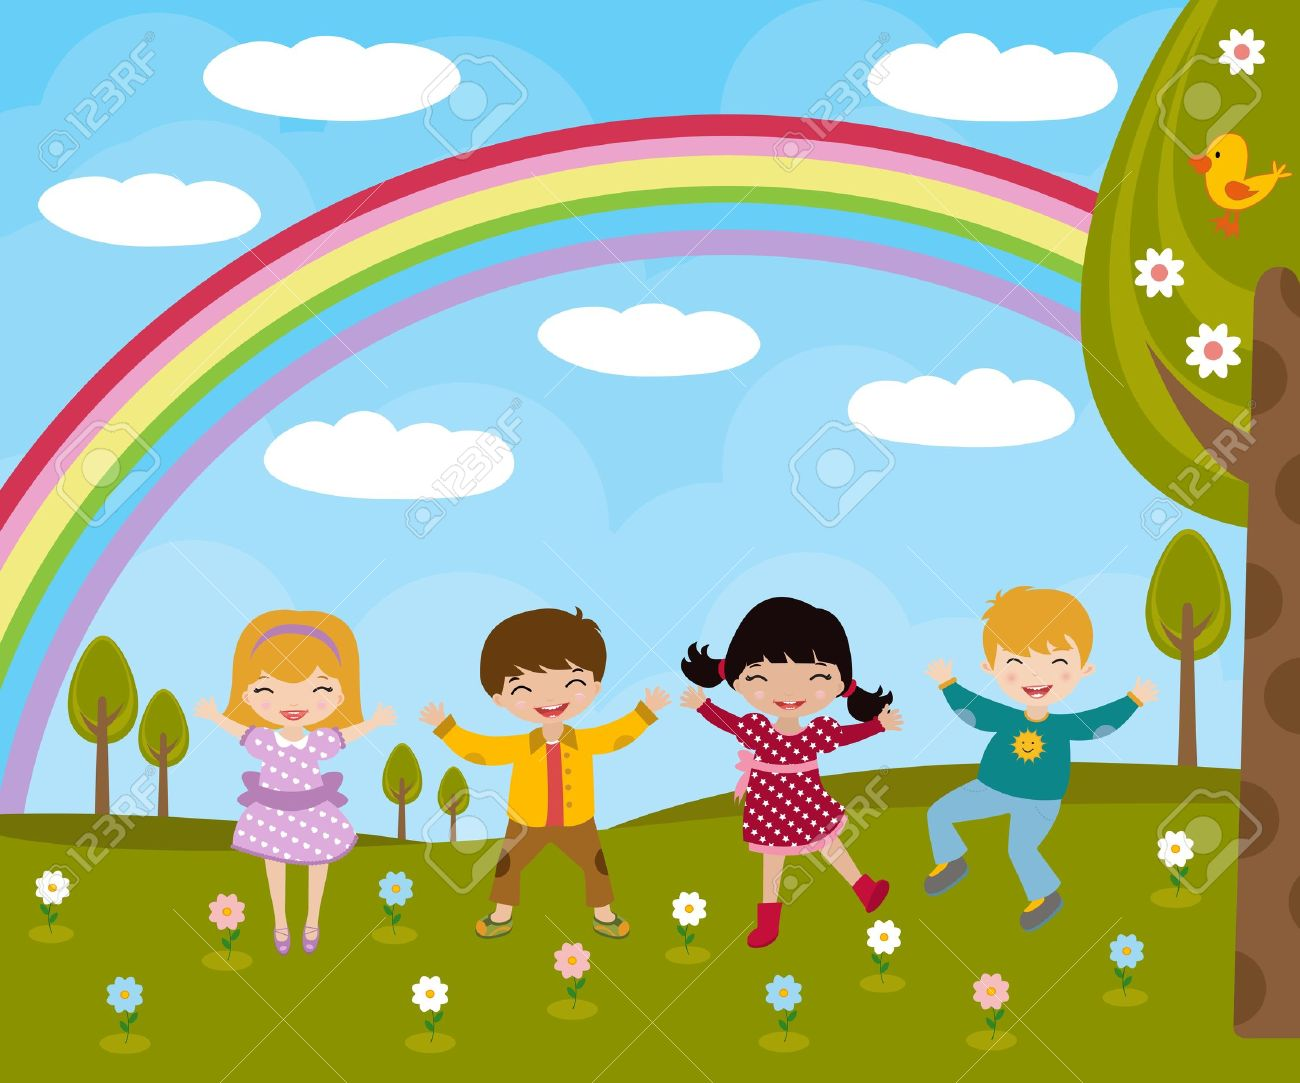 kids in spring stock vector 10045917 - Spring Images For Kids